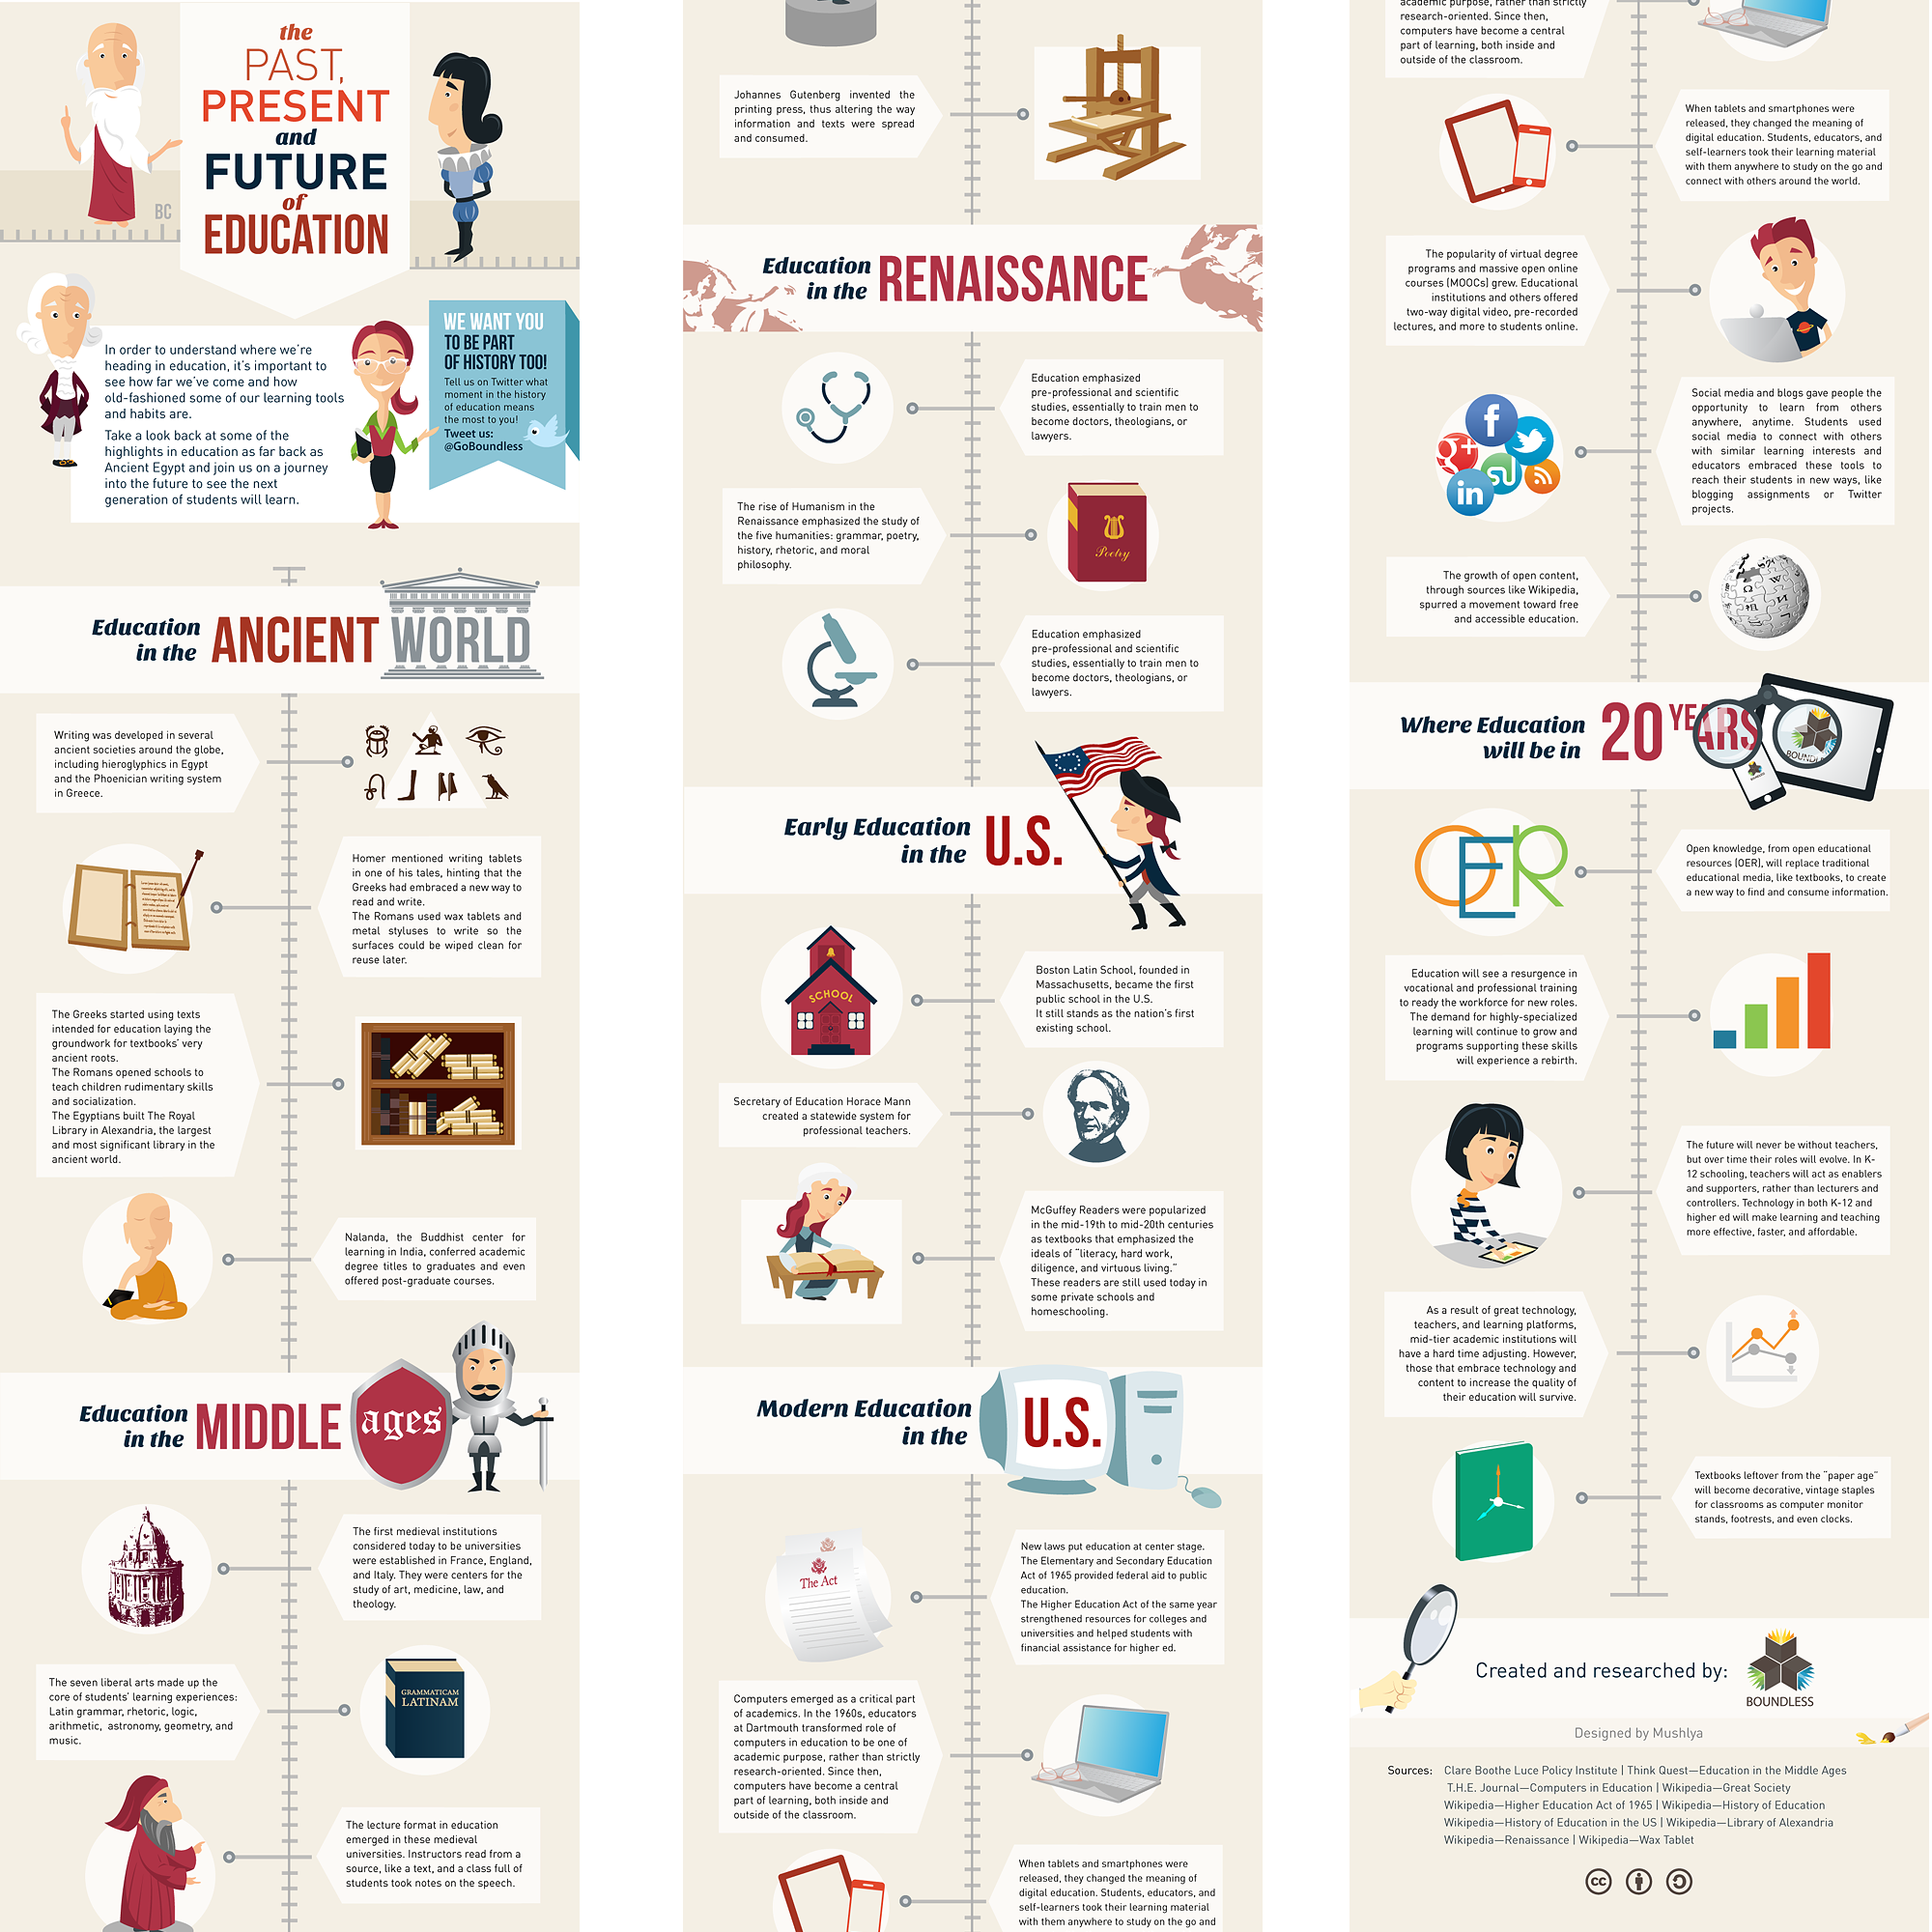 History of education infographic